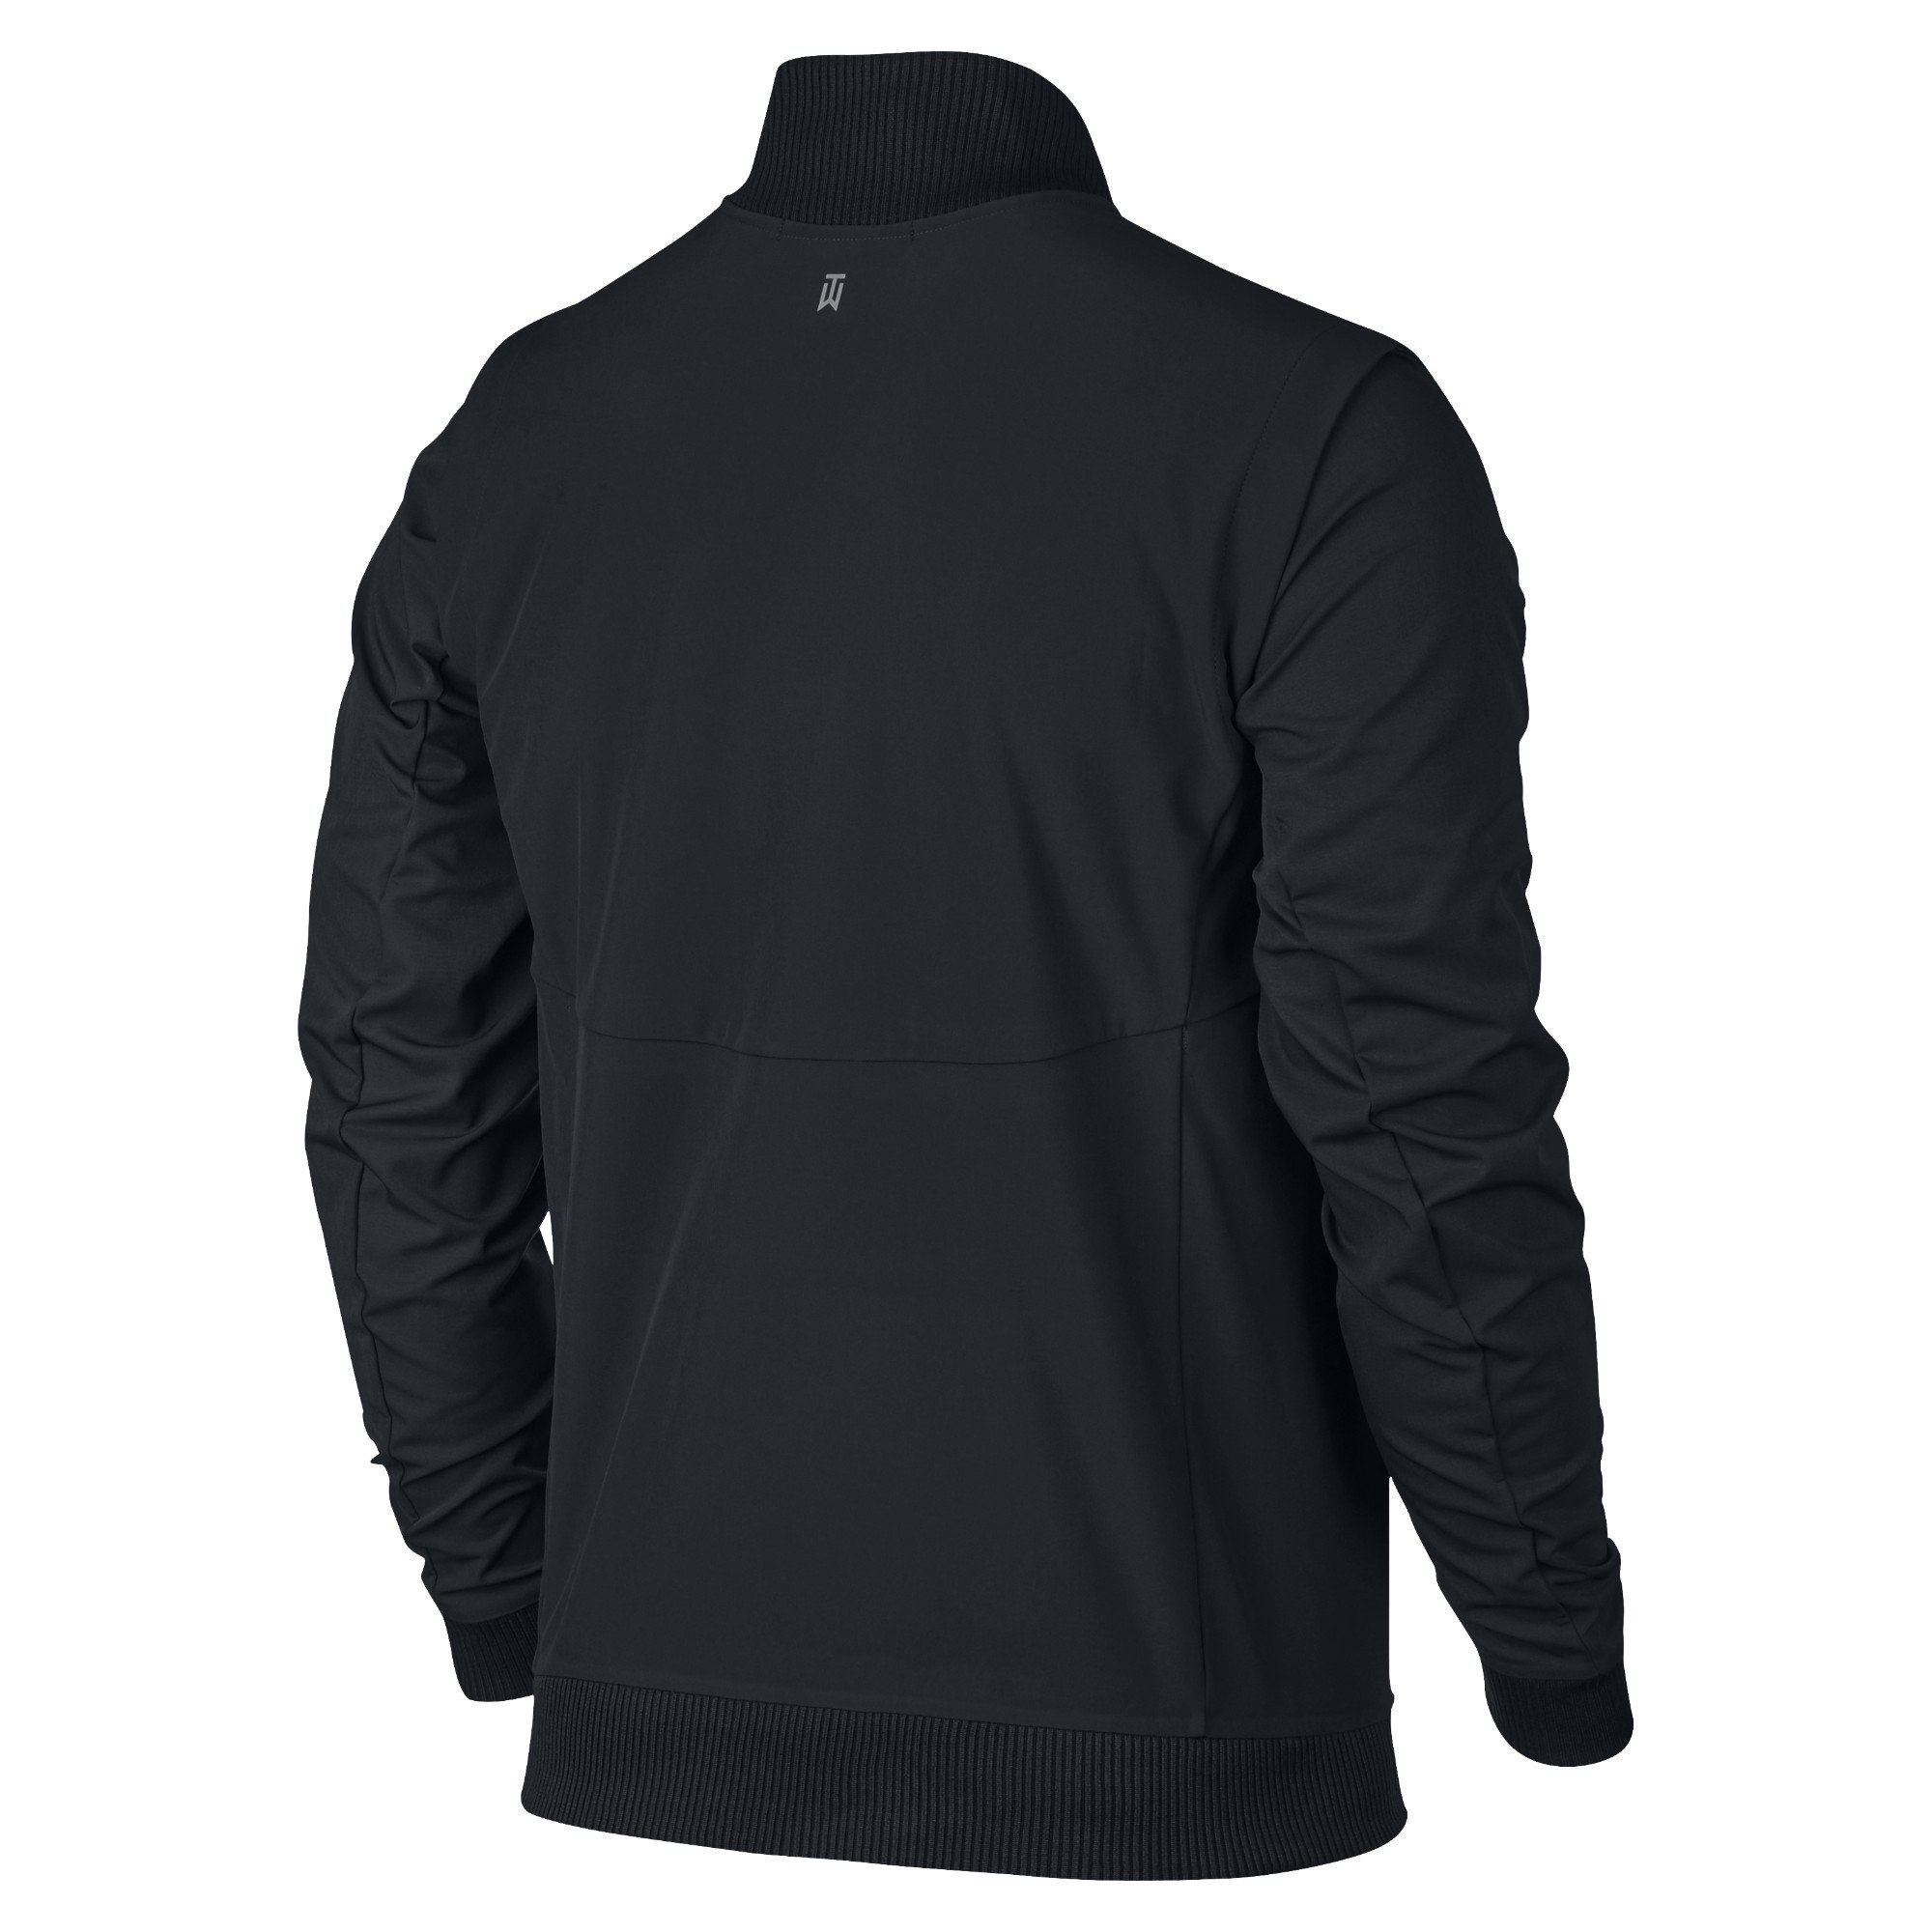 Nike TW (Tiger Woods Collection) Hyperadapt Men's Golf Bomber Jacket (Small, Black/Flat Silver) by Nike (Image #2)